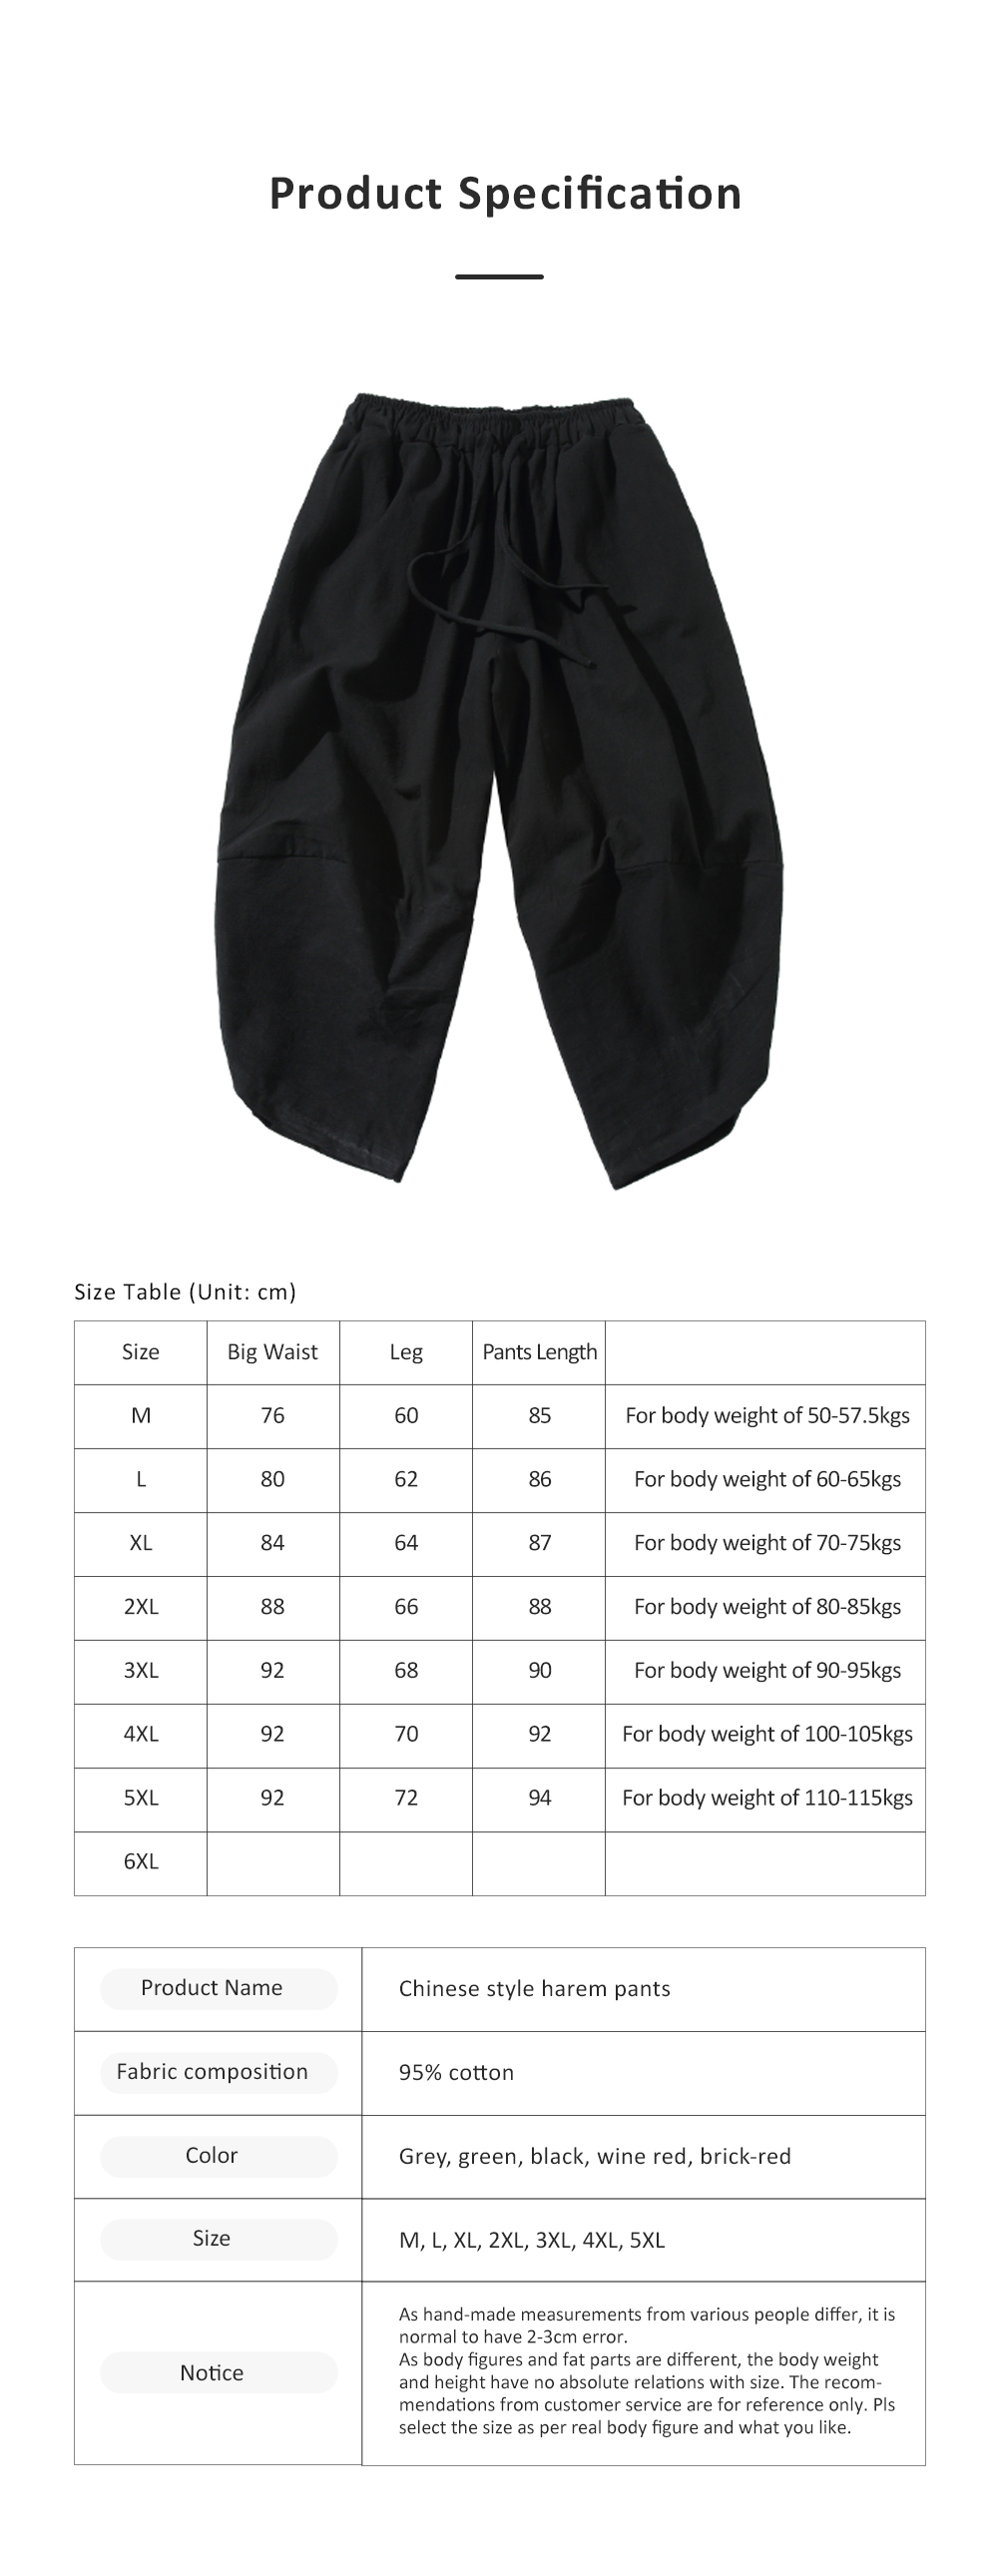 Mid-rise Loose Version Hip Pants Large Size Cropped Trousers for Men Wear Summer Casual Stylish Loose Pants 6